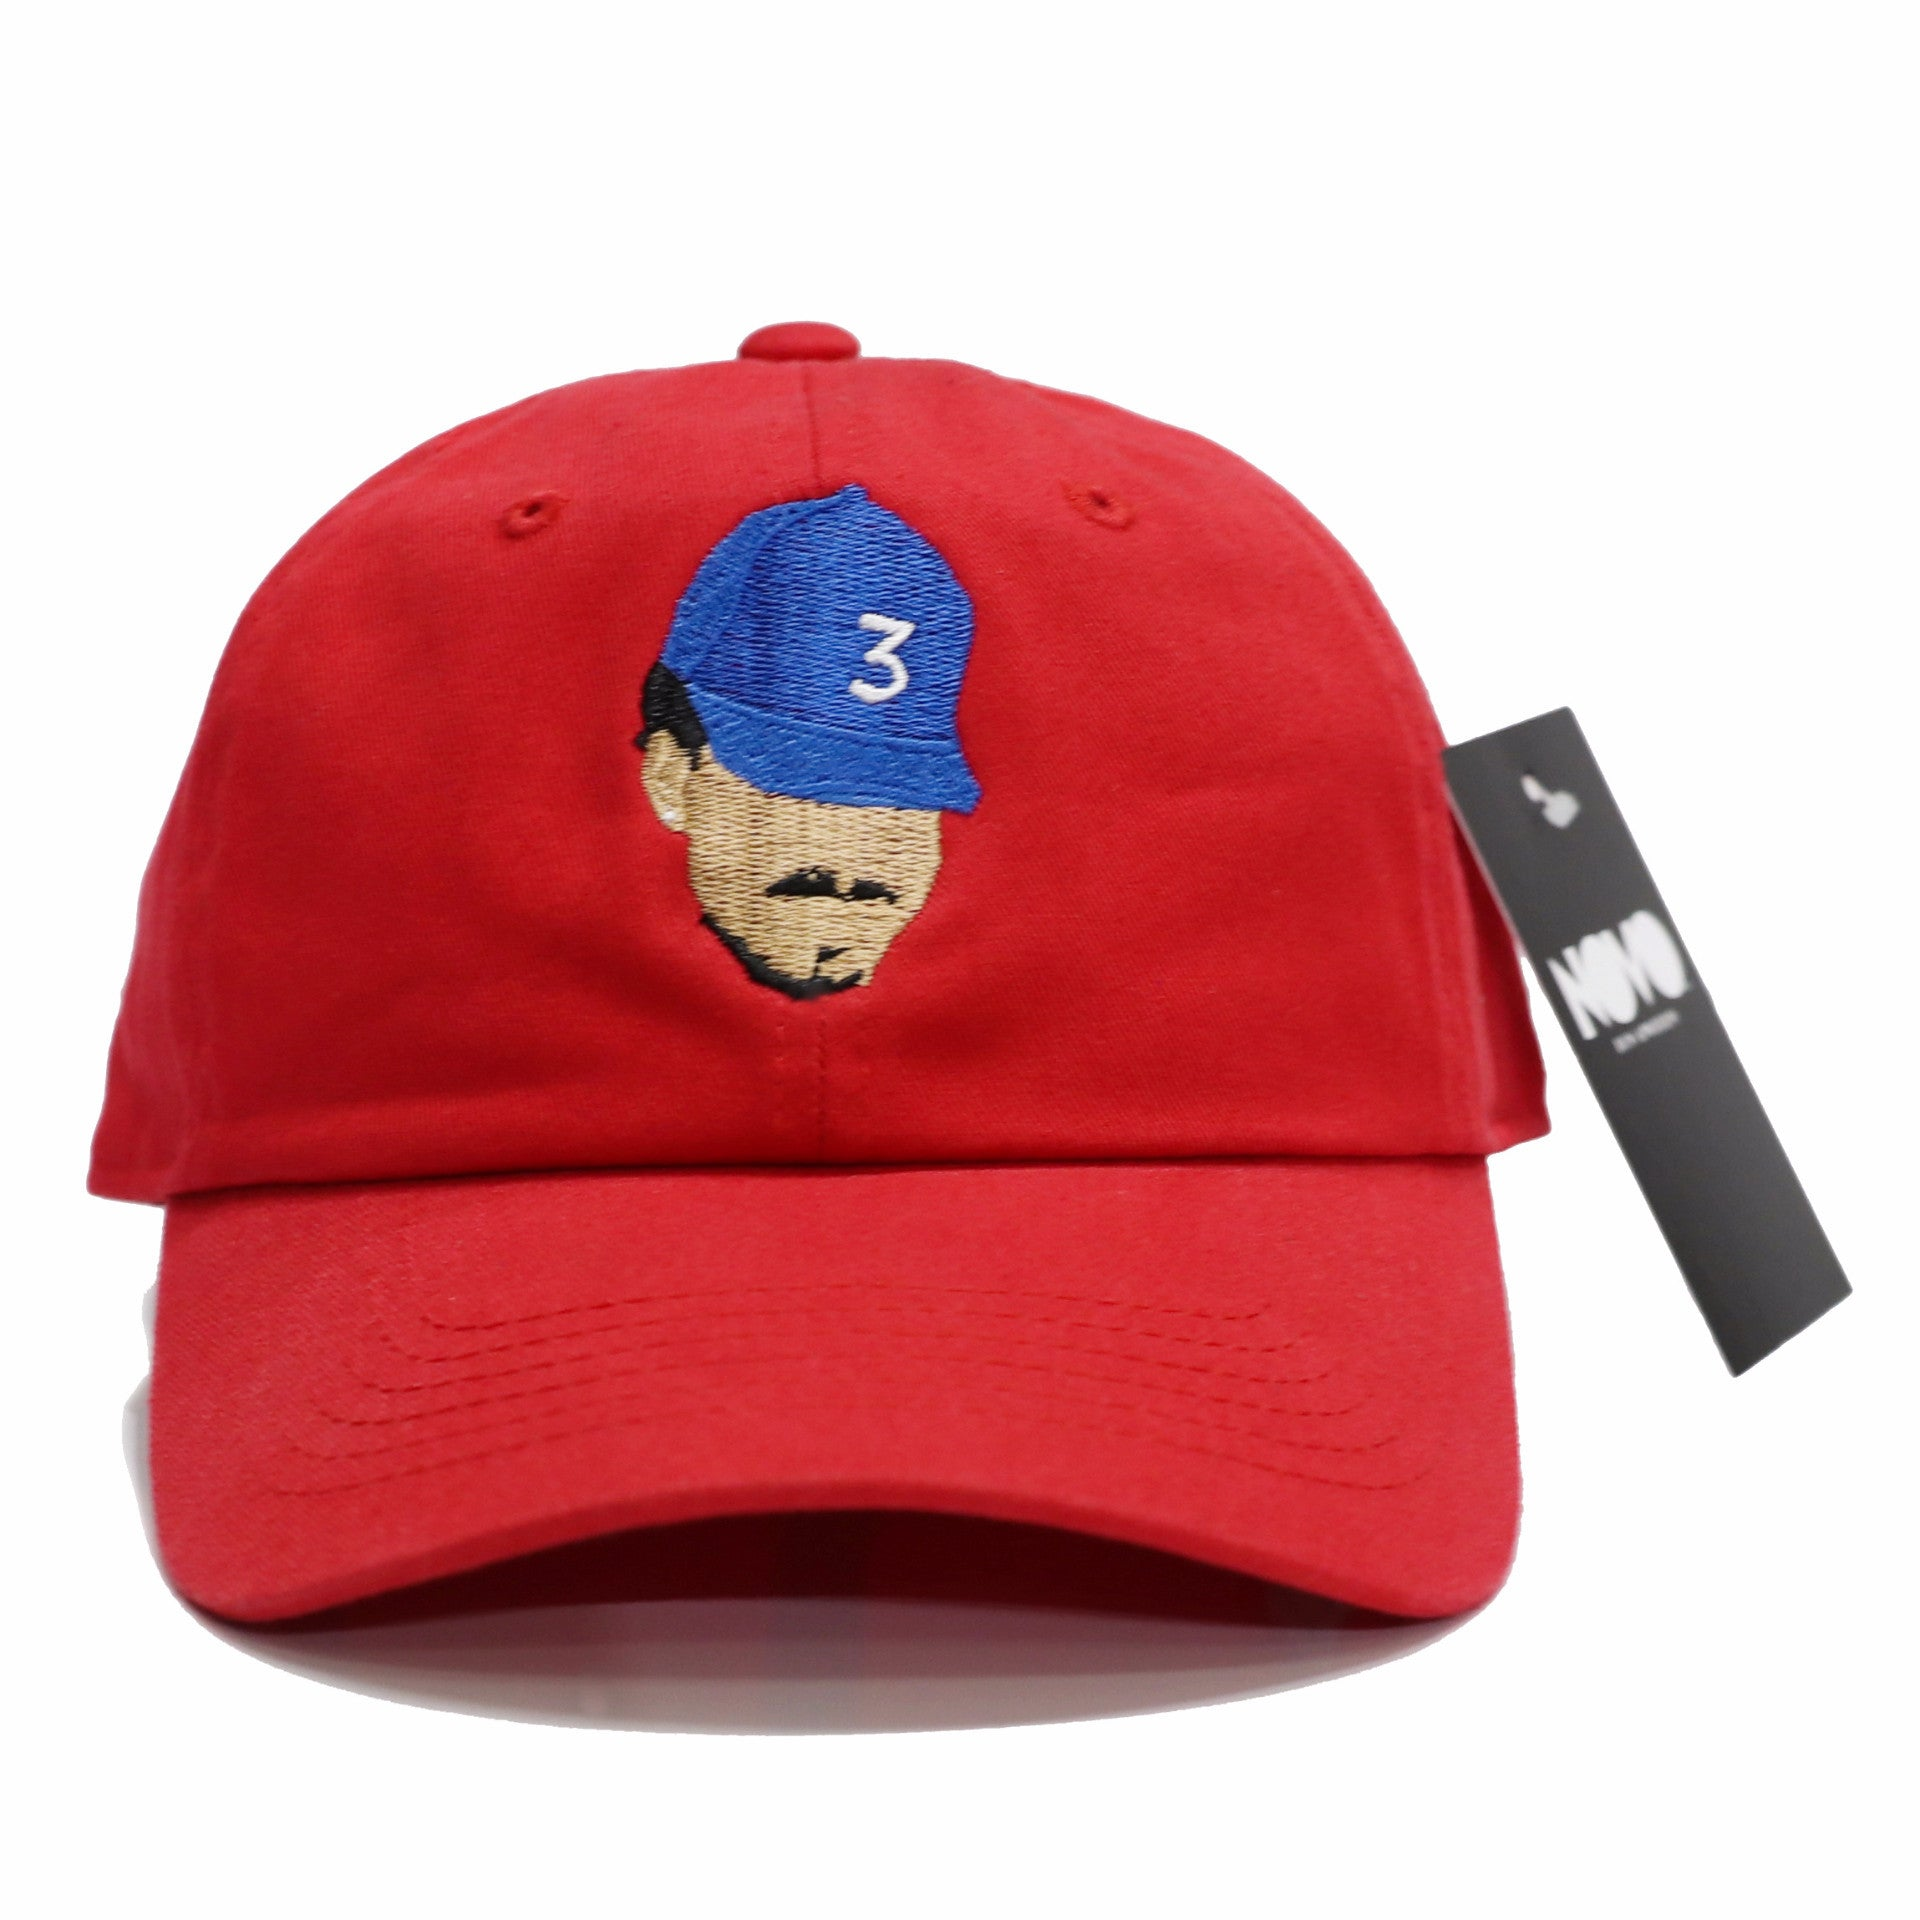 Chance the rapper dad hat red in twilled cotton novolosangeles jpg  1920x1920 Rapper hat c1c9606a38f8